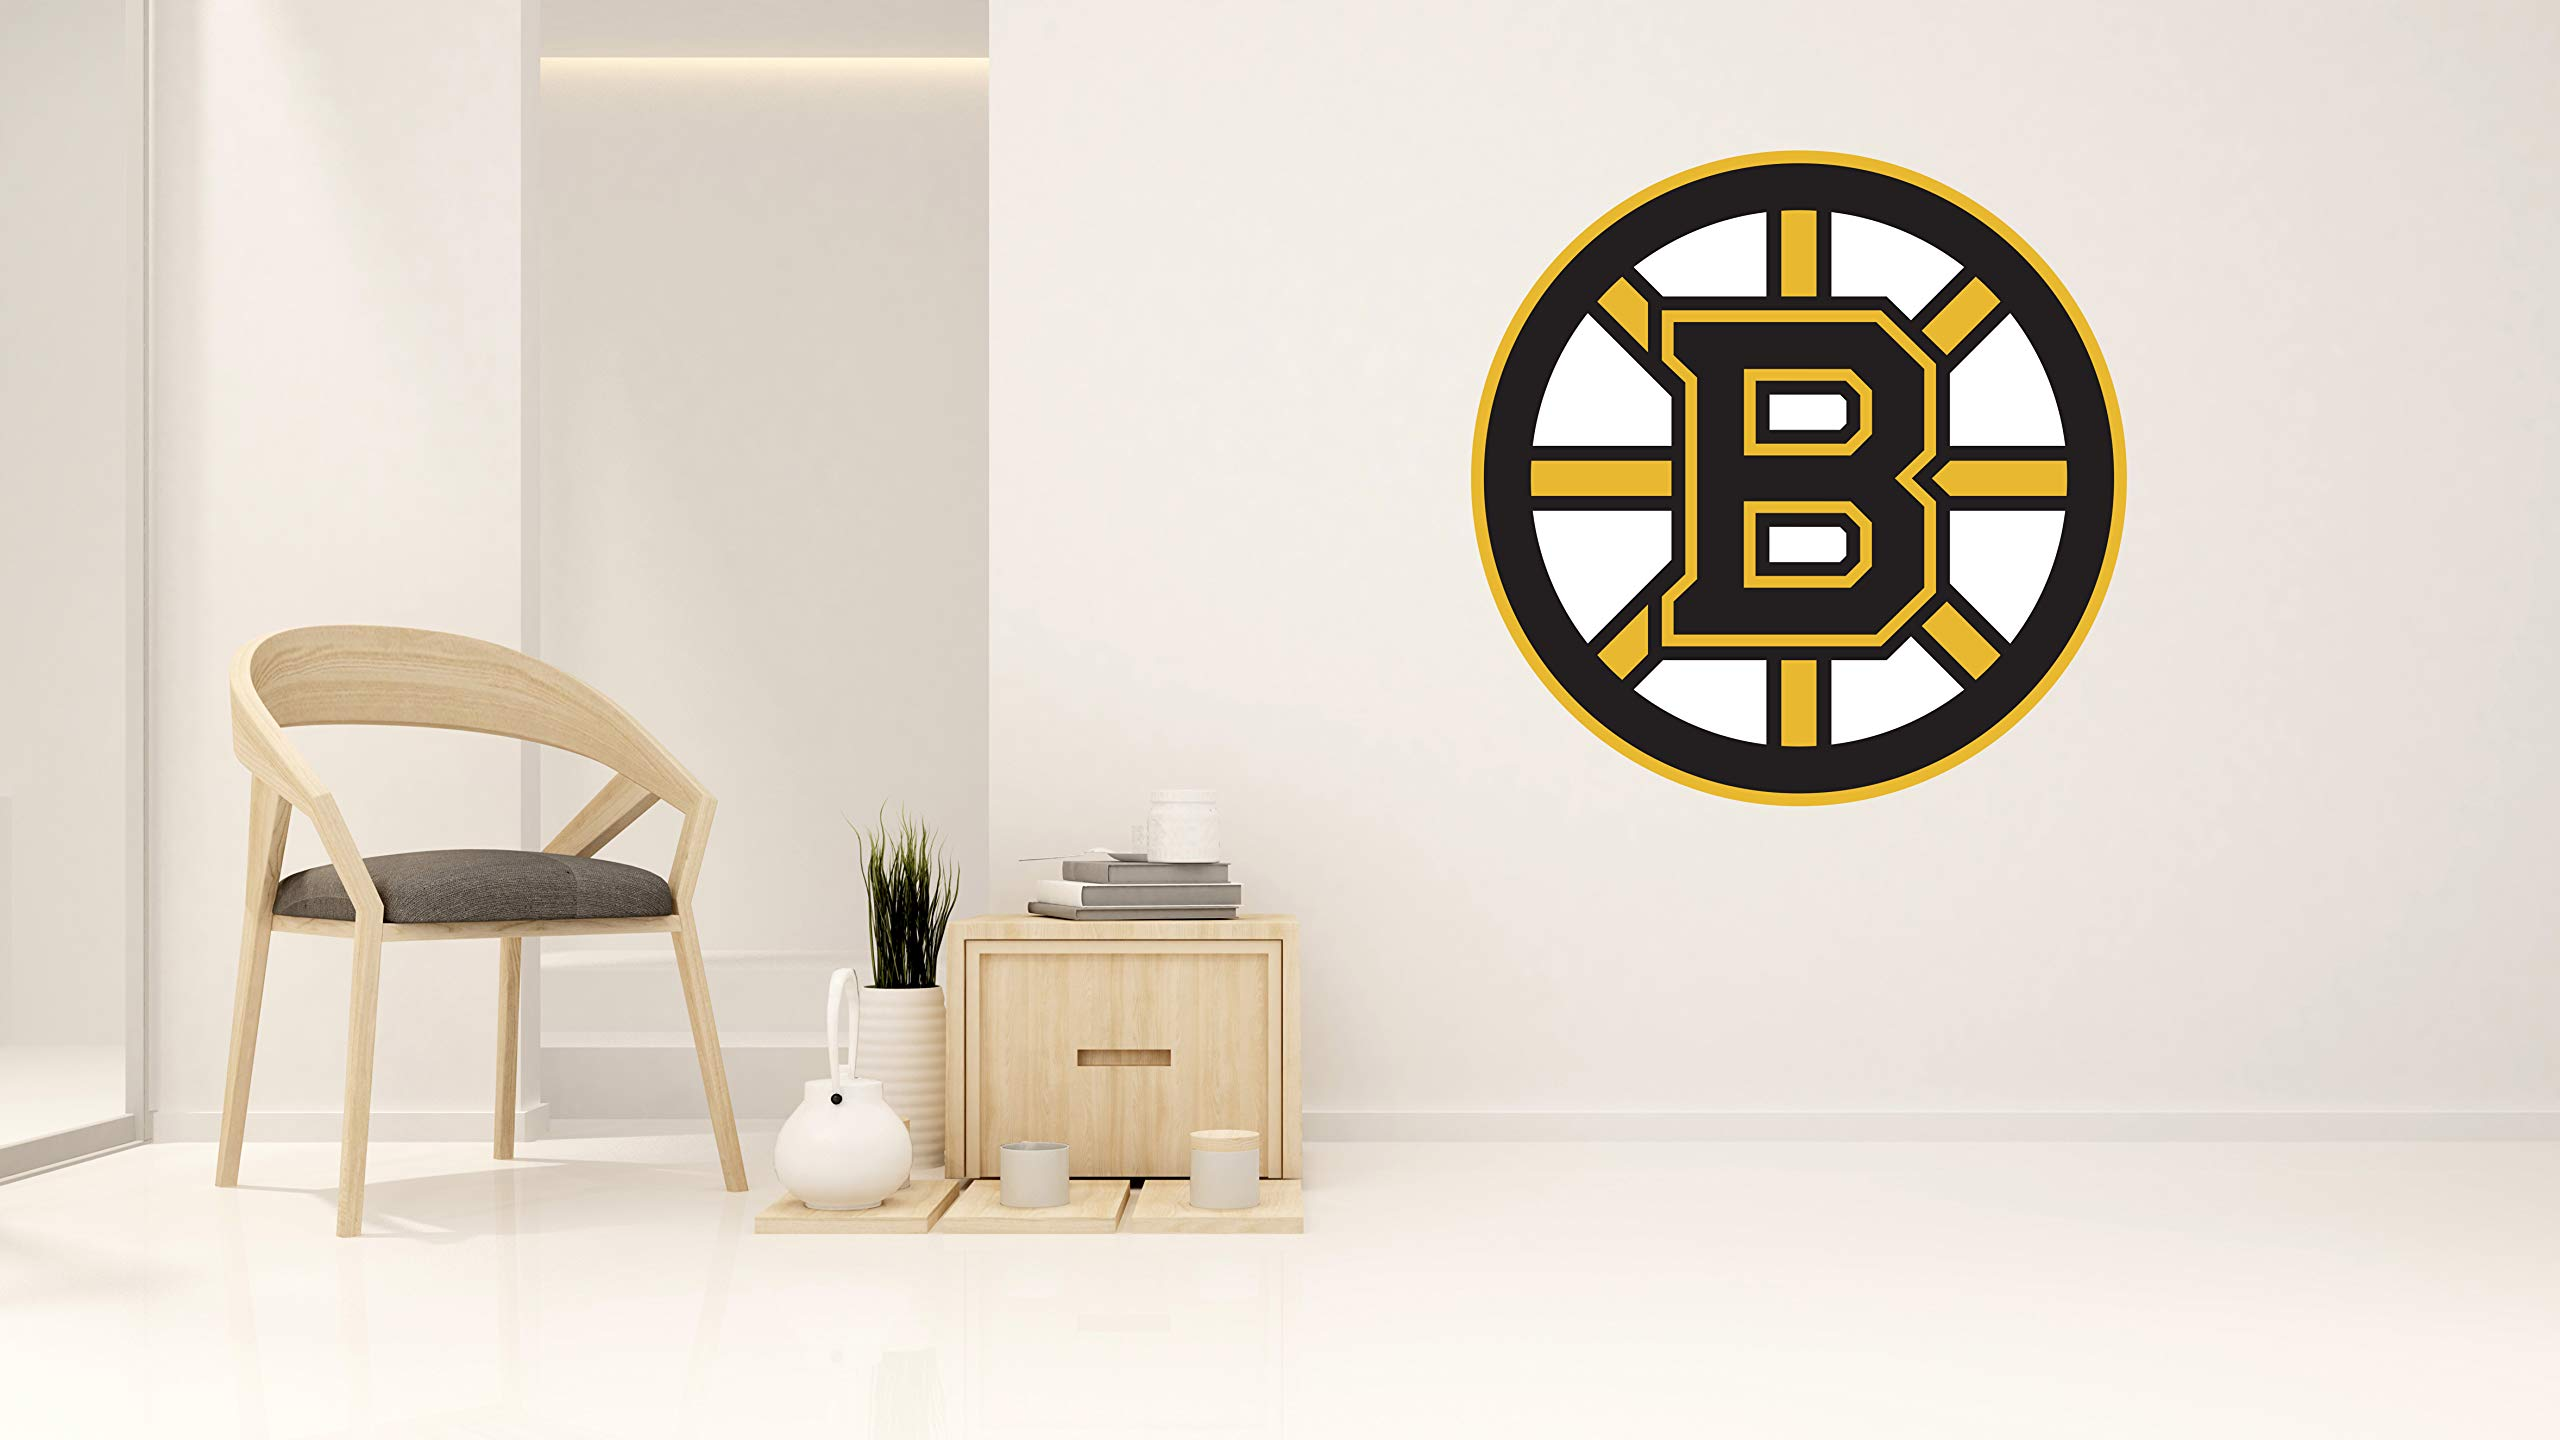 Hockey Team BB Logo - Wall Decal for Home Bedroom Hall Decoration (Wide 30''x30'' Height Inches) by CuteDecals